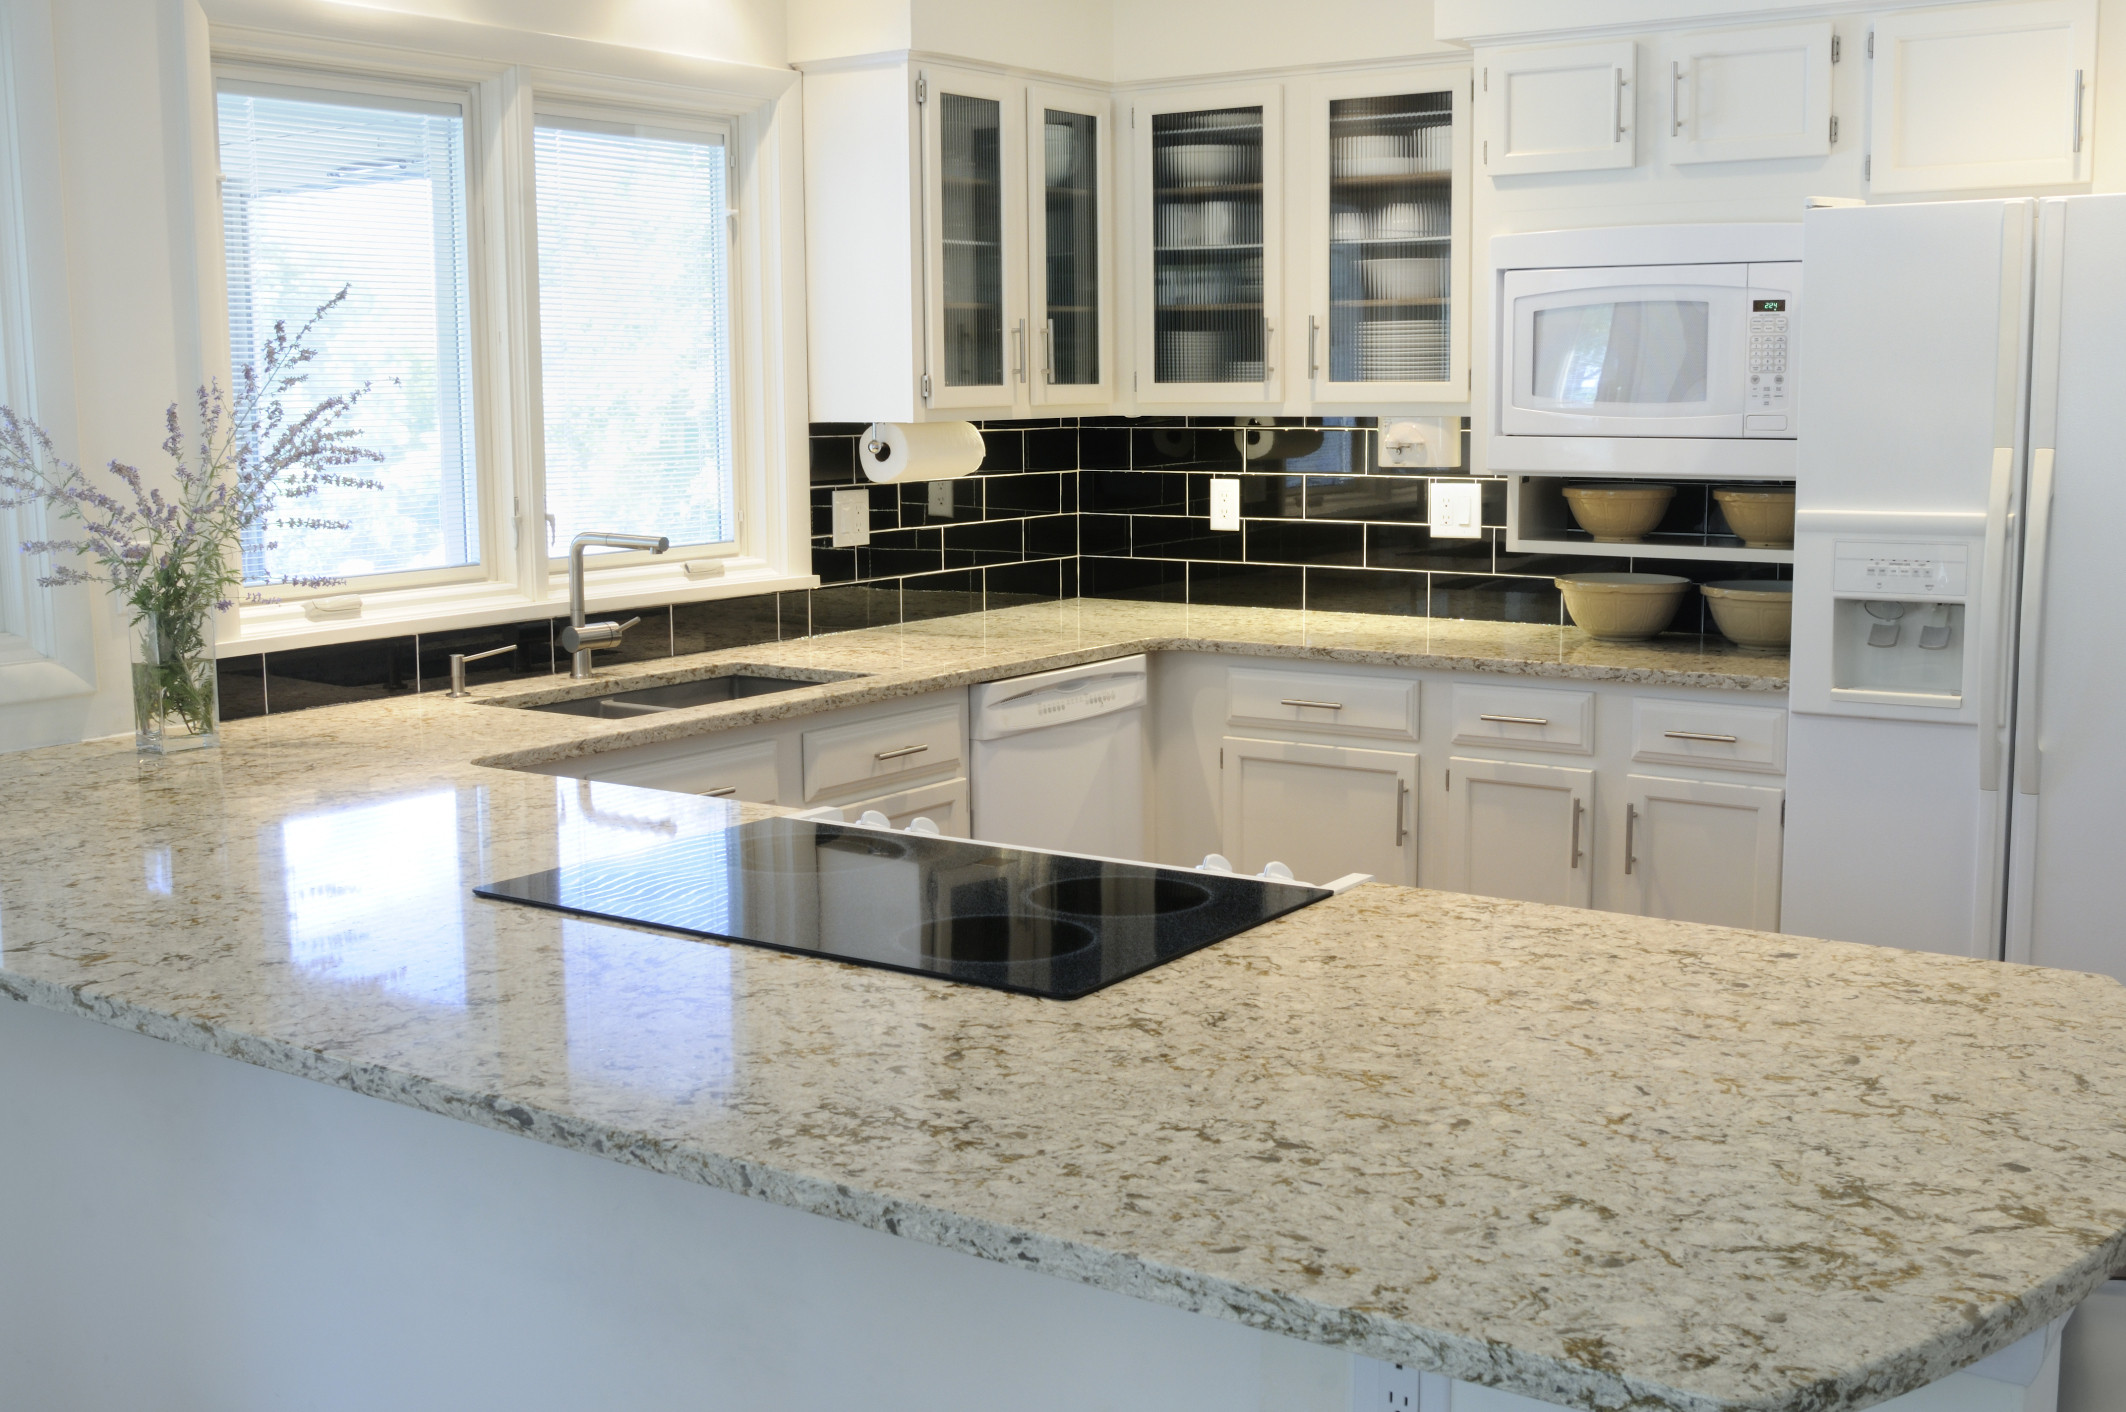 Non Granite Kitchen Countertops 10 Reasons To Let Go Of The Granite Obsession Already Huffpost